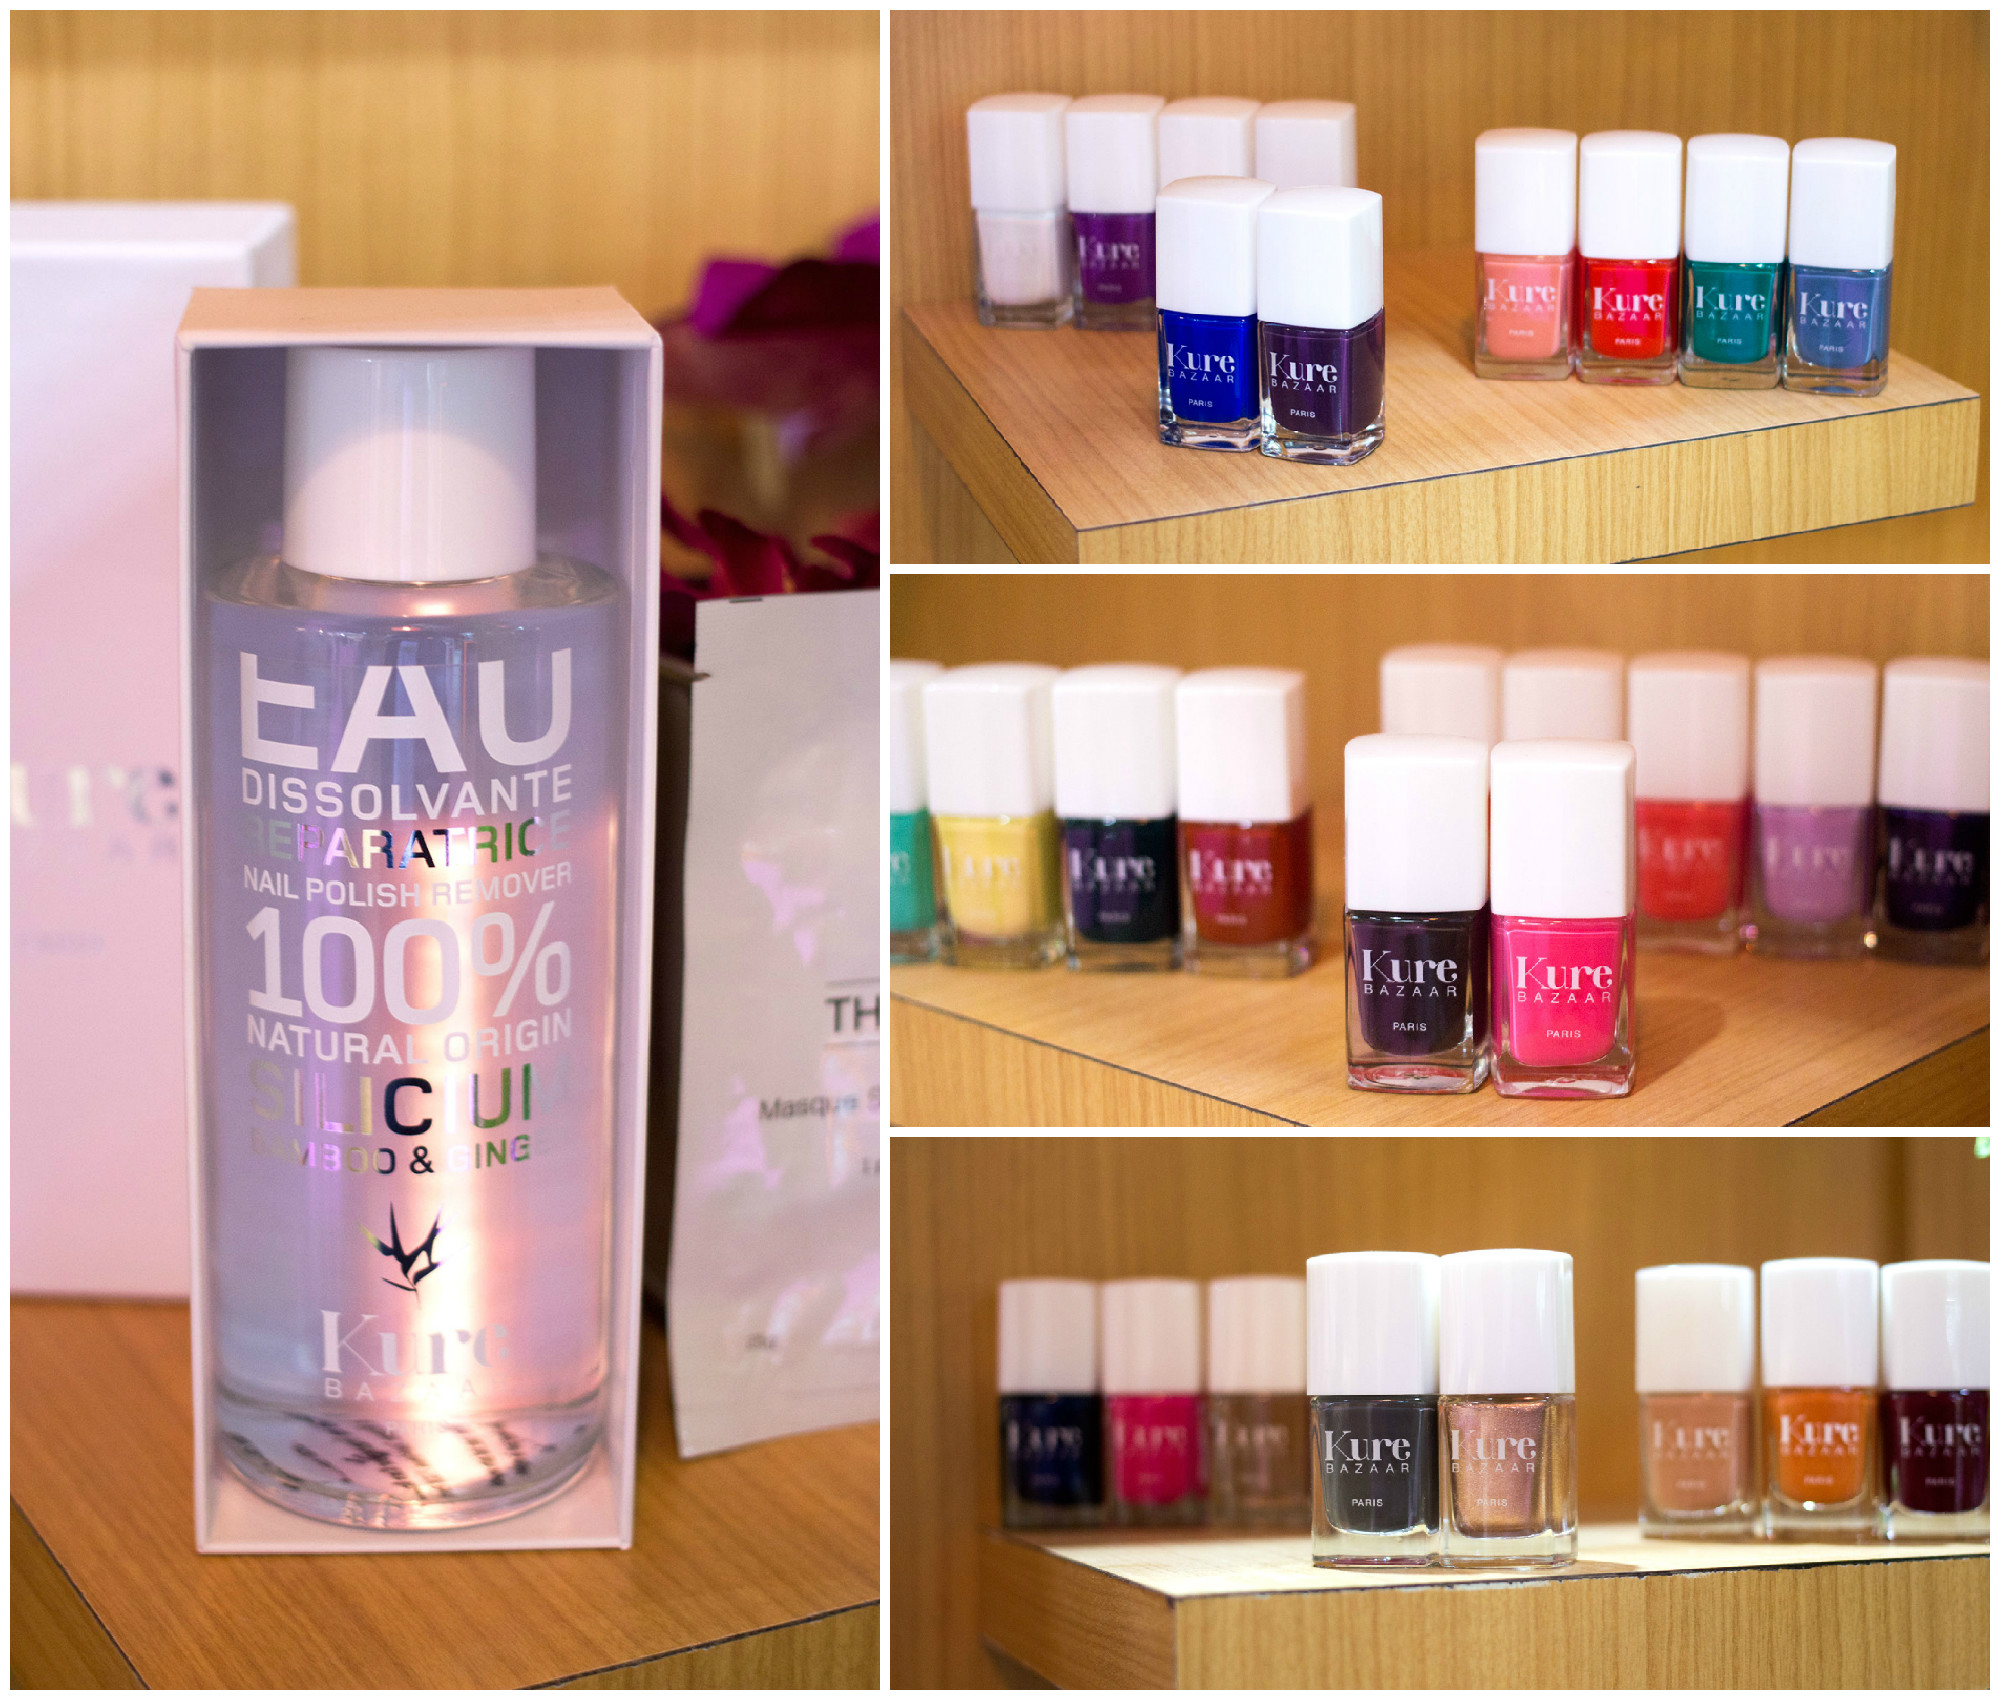 Kure Bazaar - Beautyworld Middle East